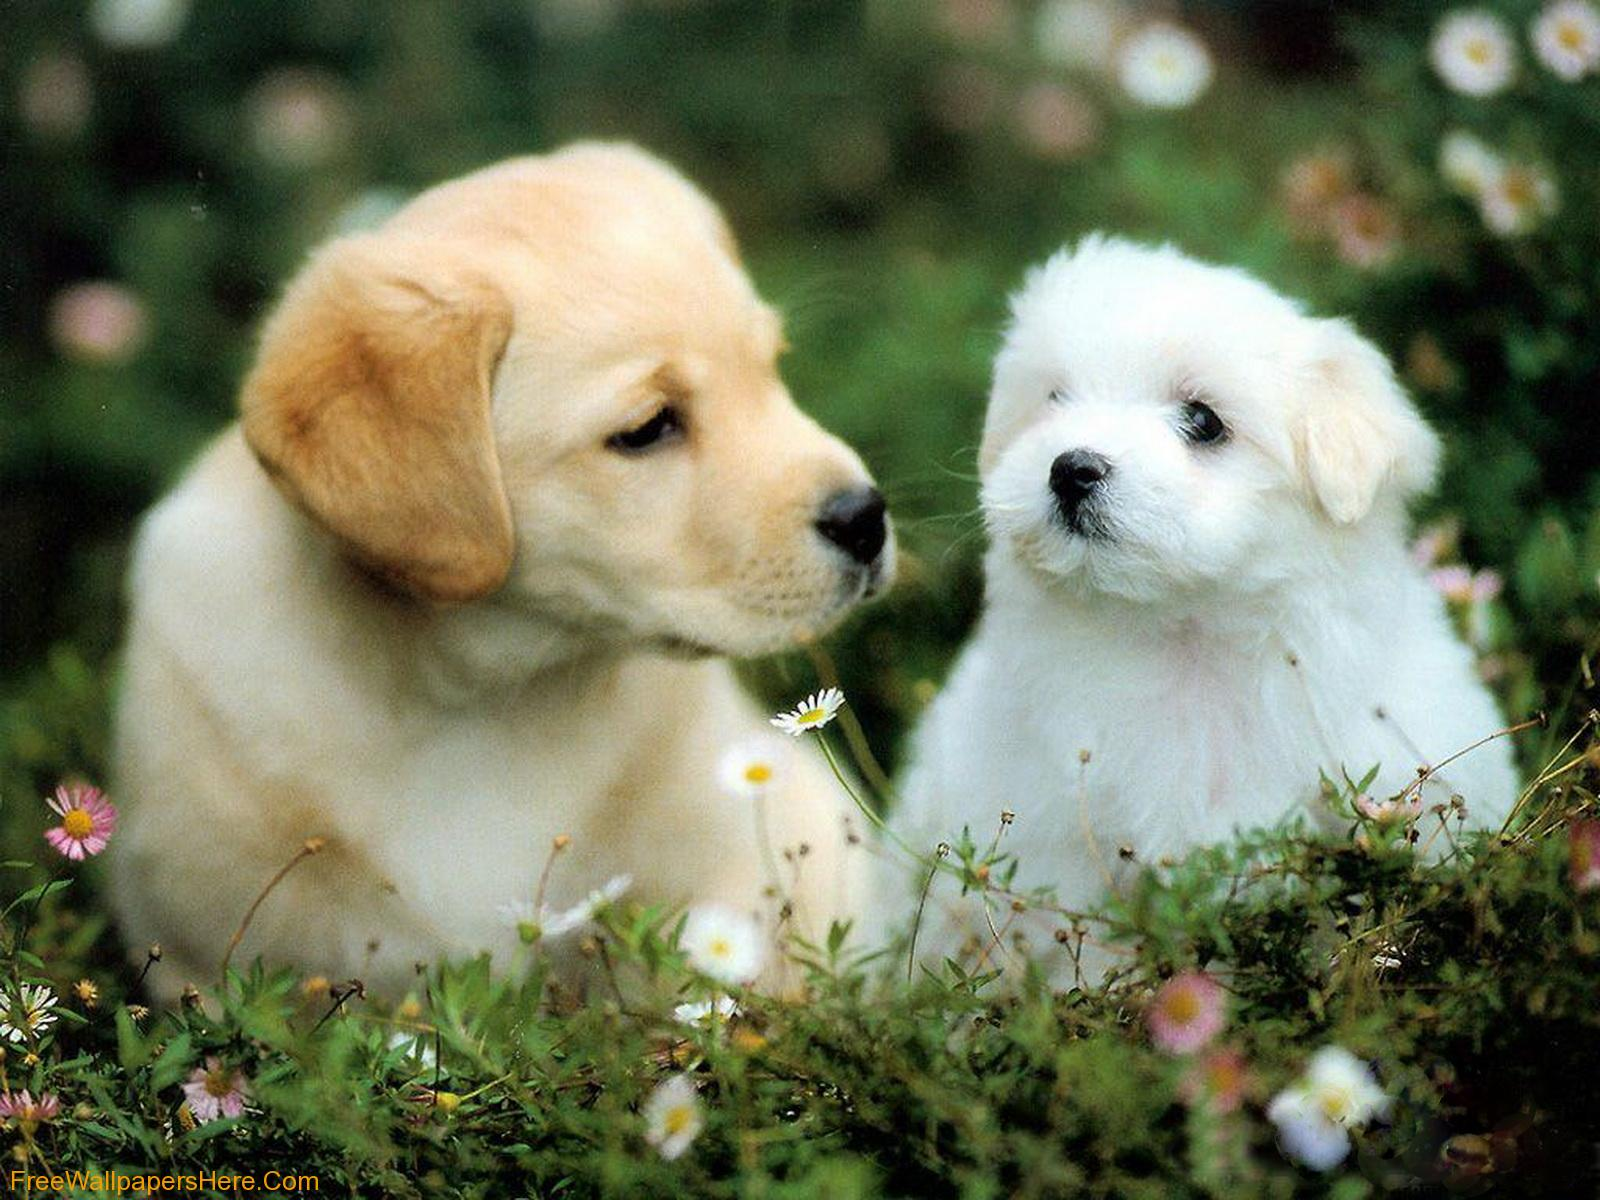 Wallpaper Gallery: Cute Puppies Wallpaper